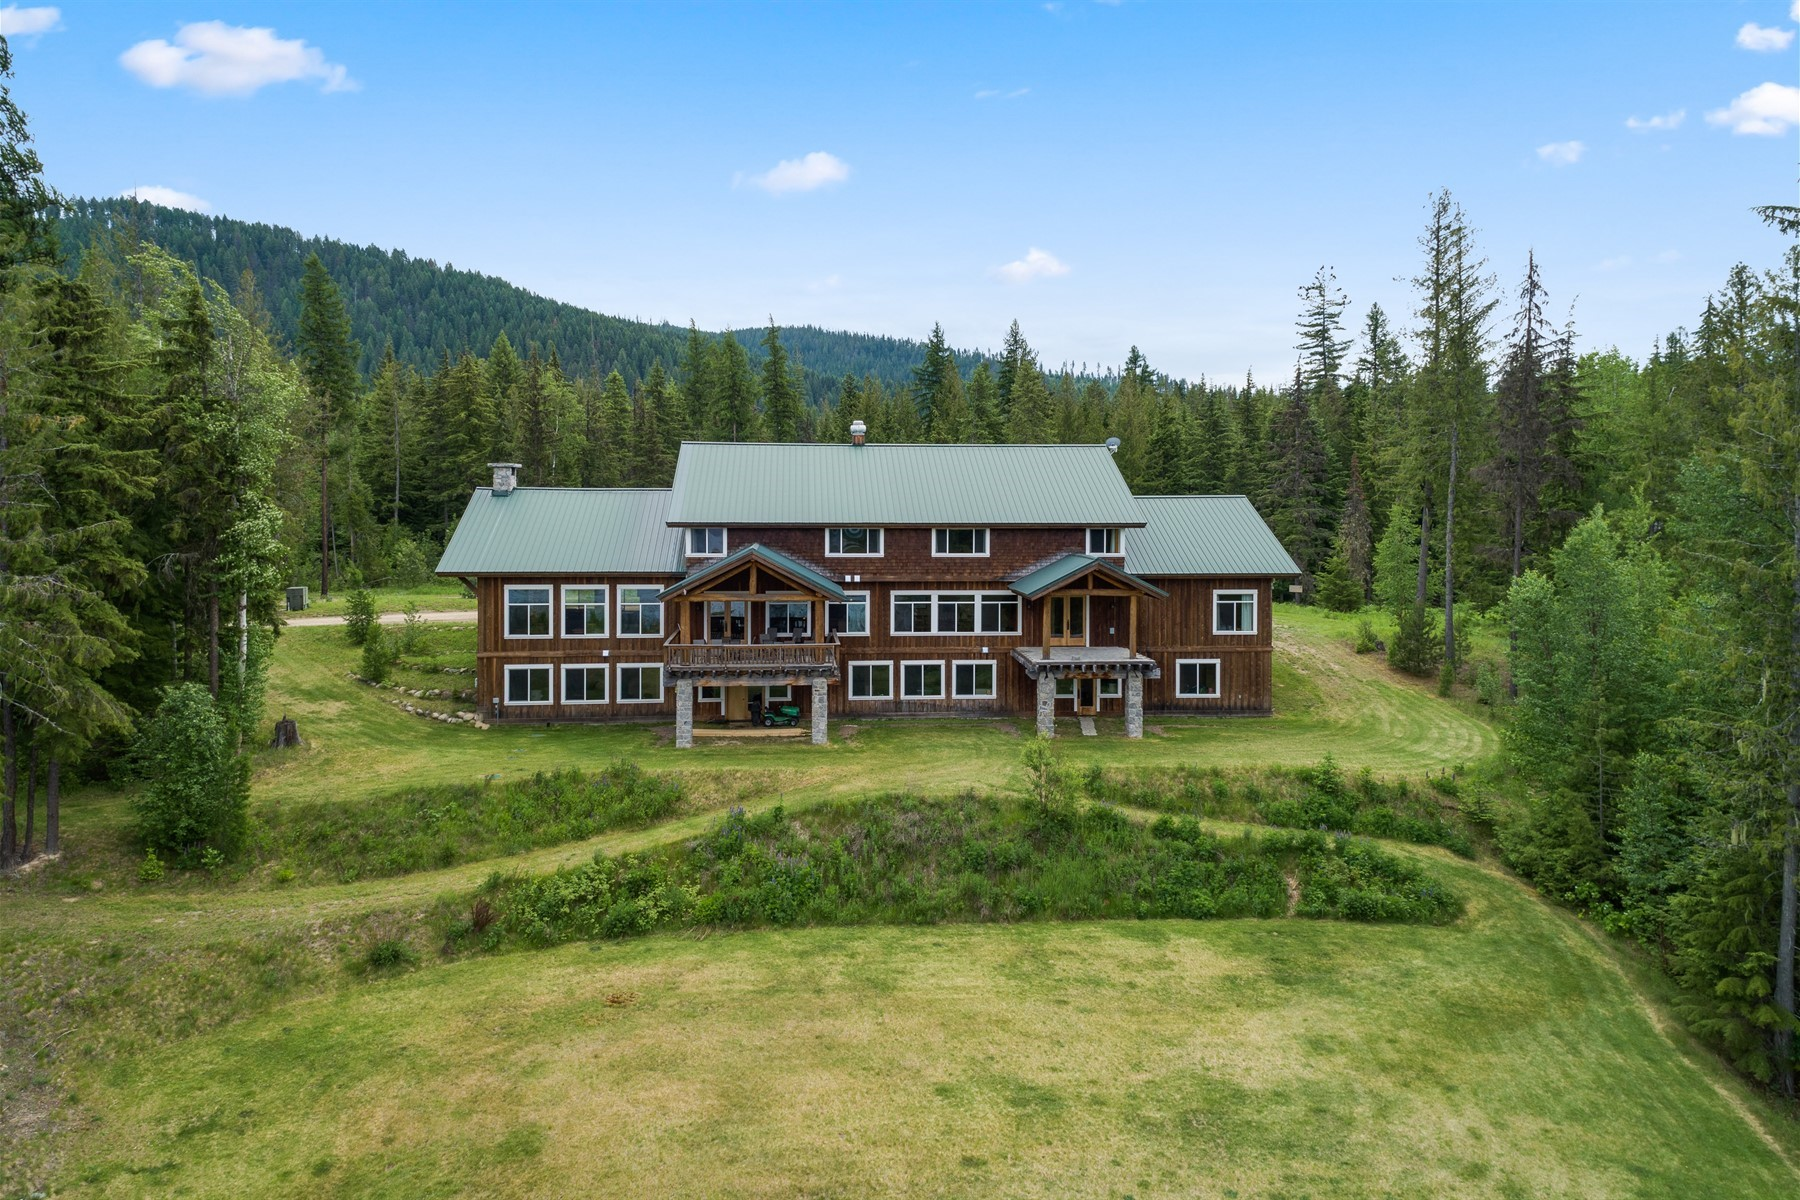 for Sale at Sundance Mountain Lodge Estate 551 Bushwood Dr Coolin, Idaho 83821 United States